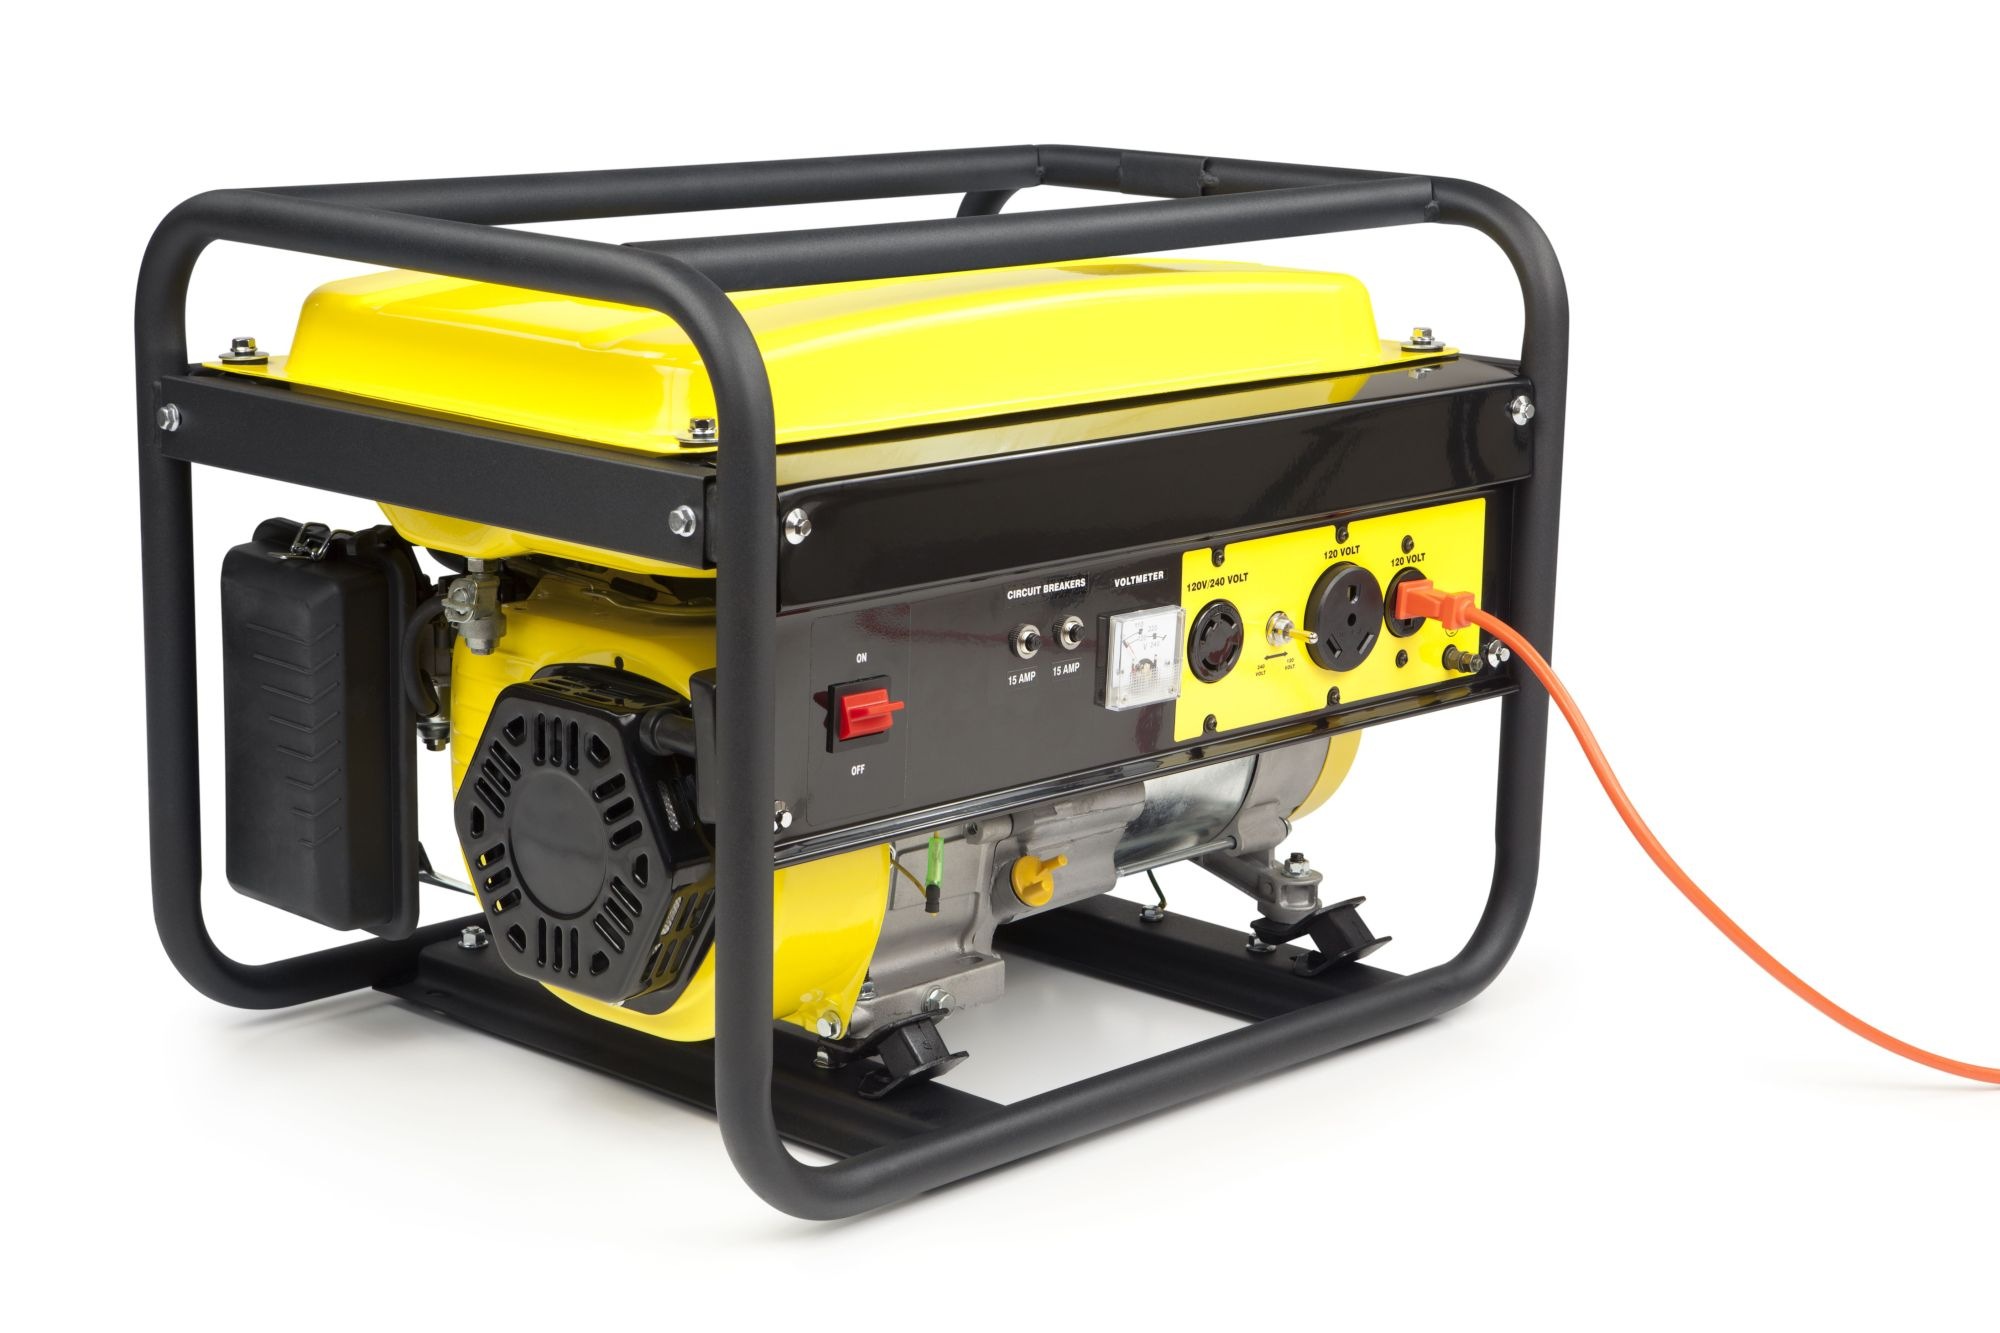 hight resolution of home generator 101 how to use a generator safely and effectively